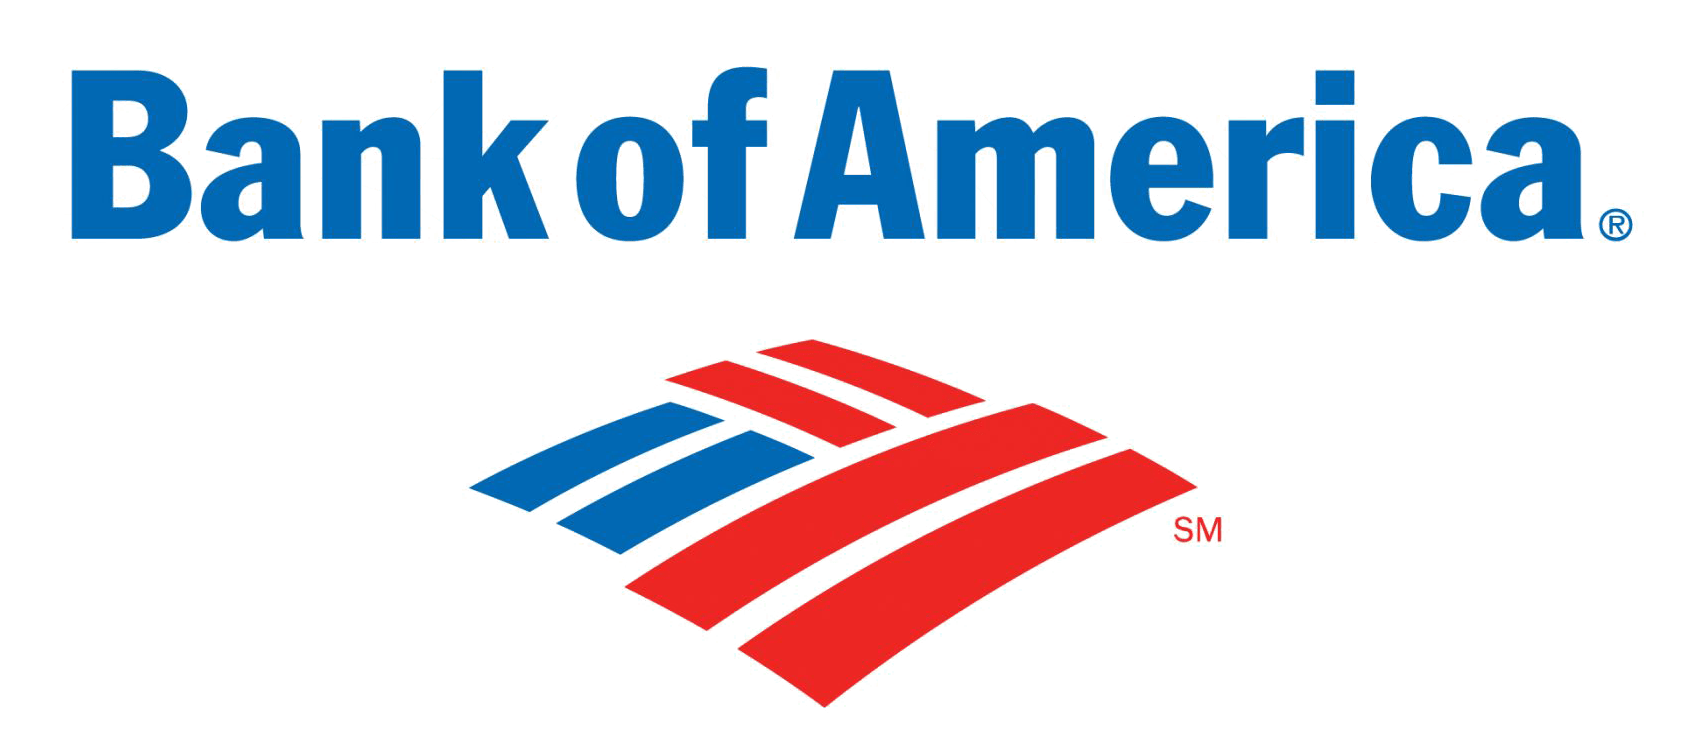 BAC: Bank of America (BAC) will drop Merrill Lynch name and ...